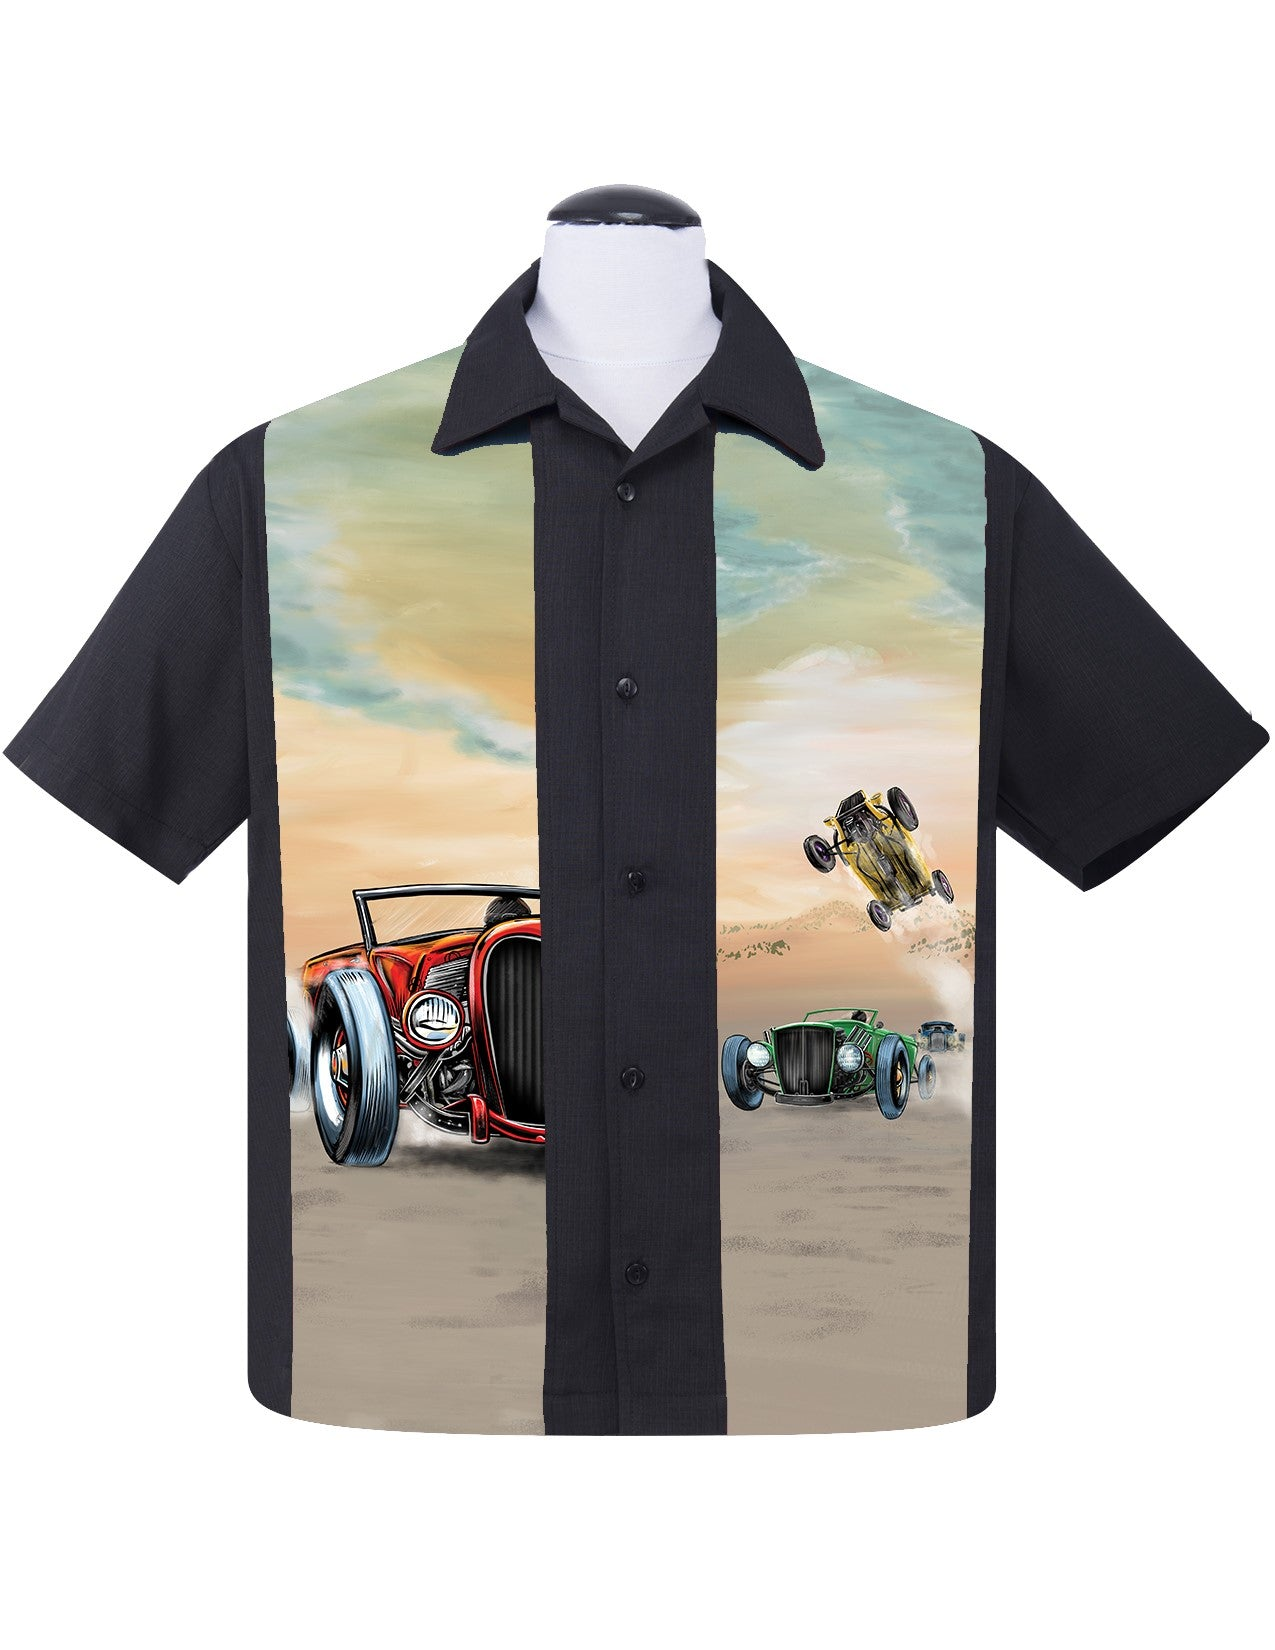 Hot Rod Derby Bowling Shirt in Black